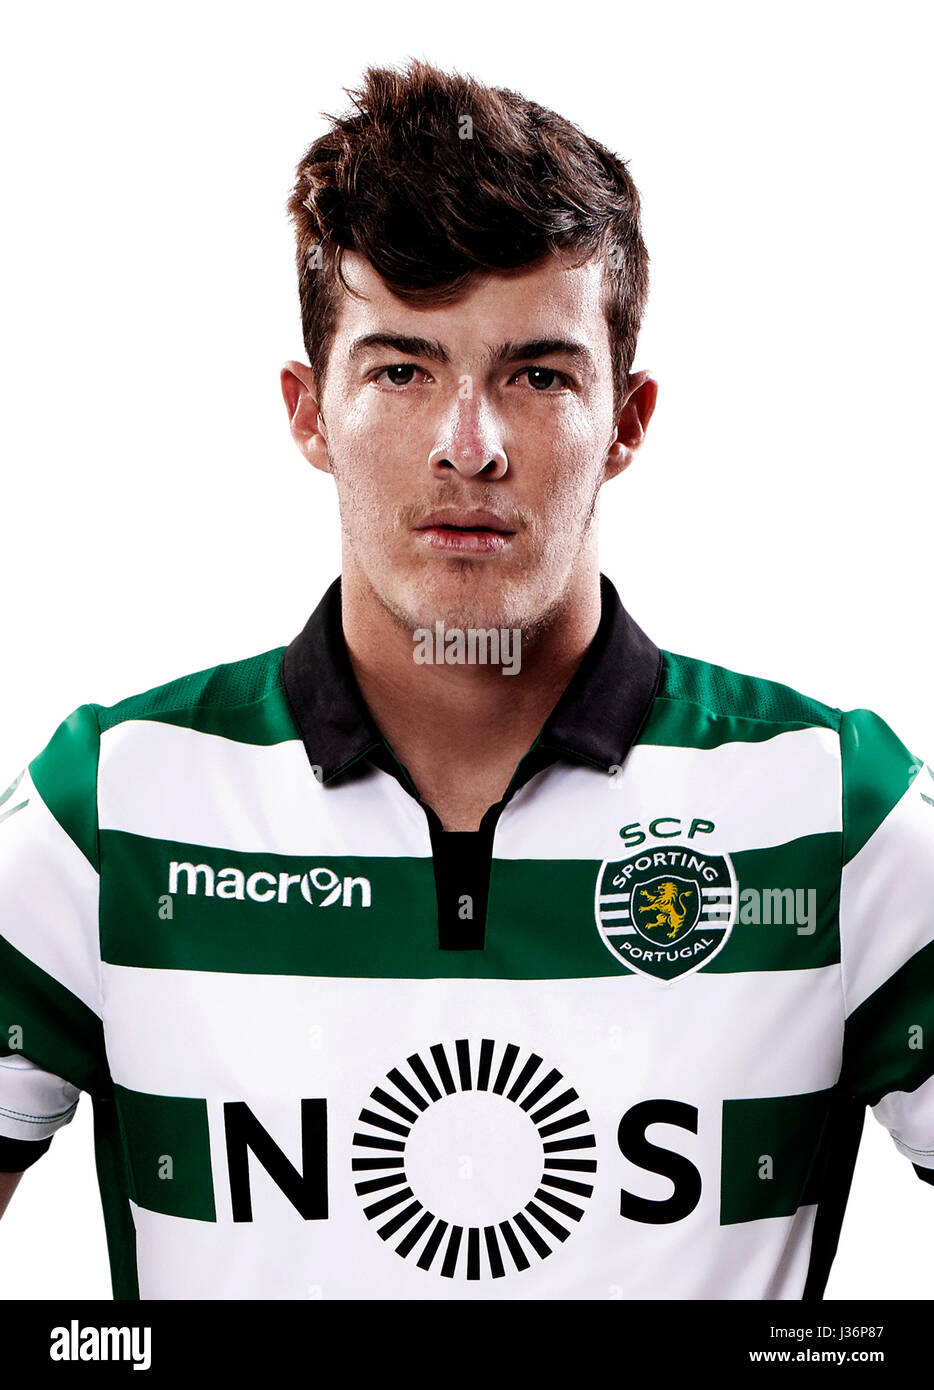 Search Results For Sporting Lisboa Bruno Jacinto Da Silva Stock Photos And Images